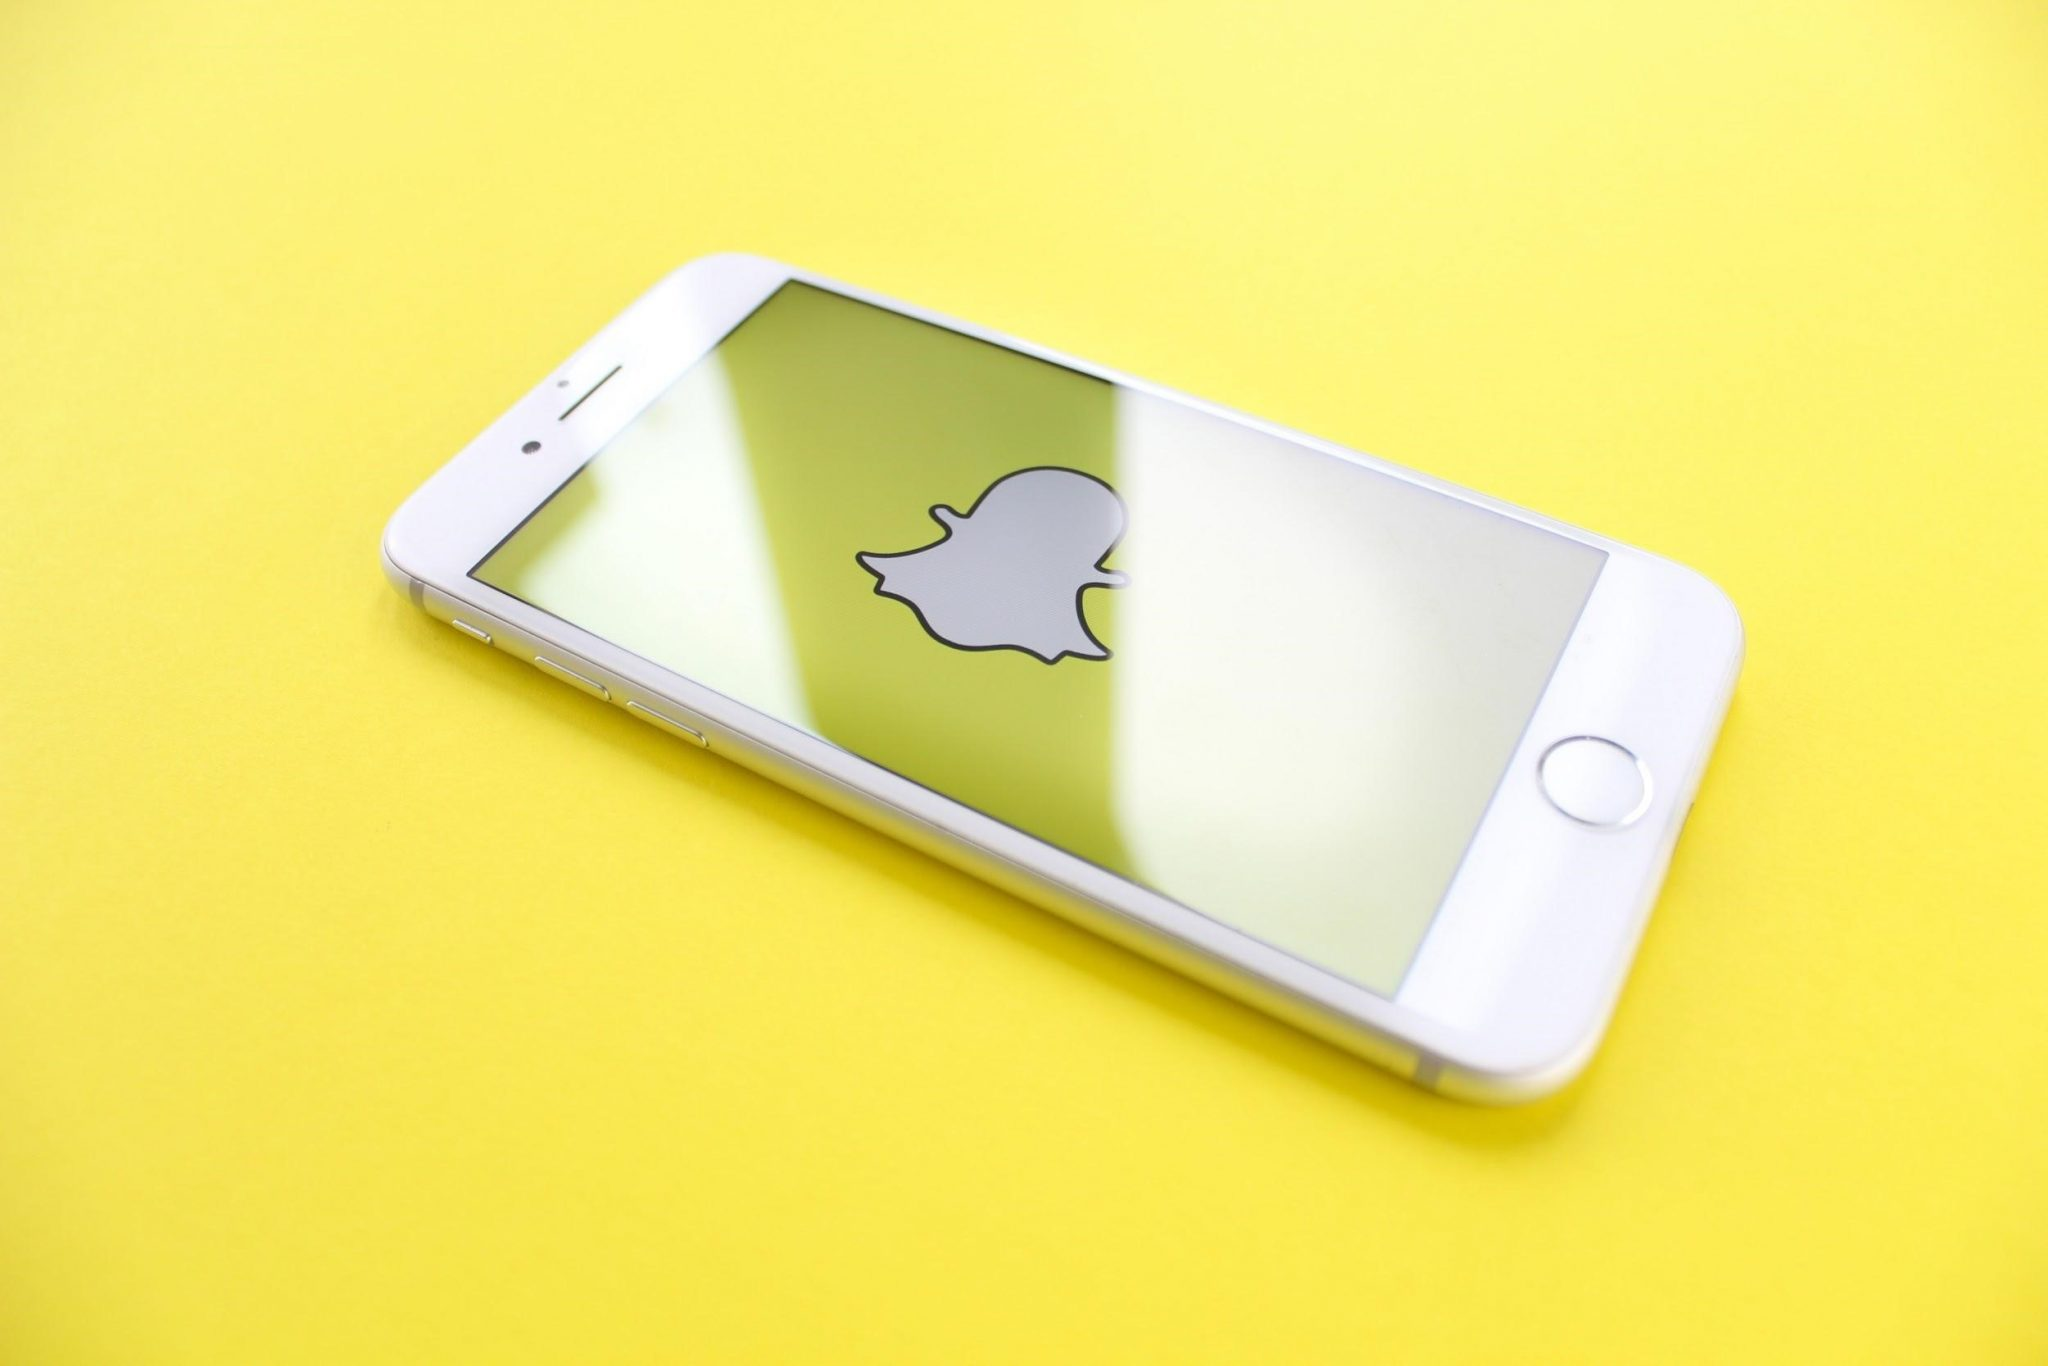 What-Is-Snapchat-Spotlight-And-How-To-Use-It-scaled.jpg